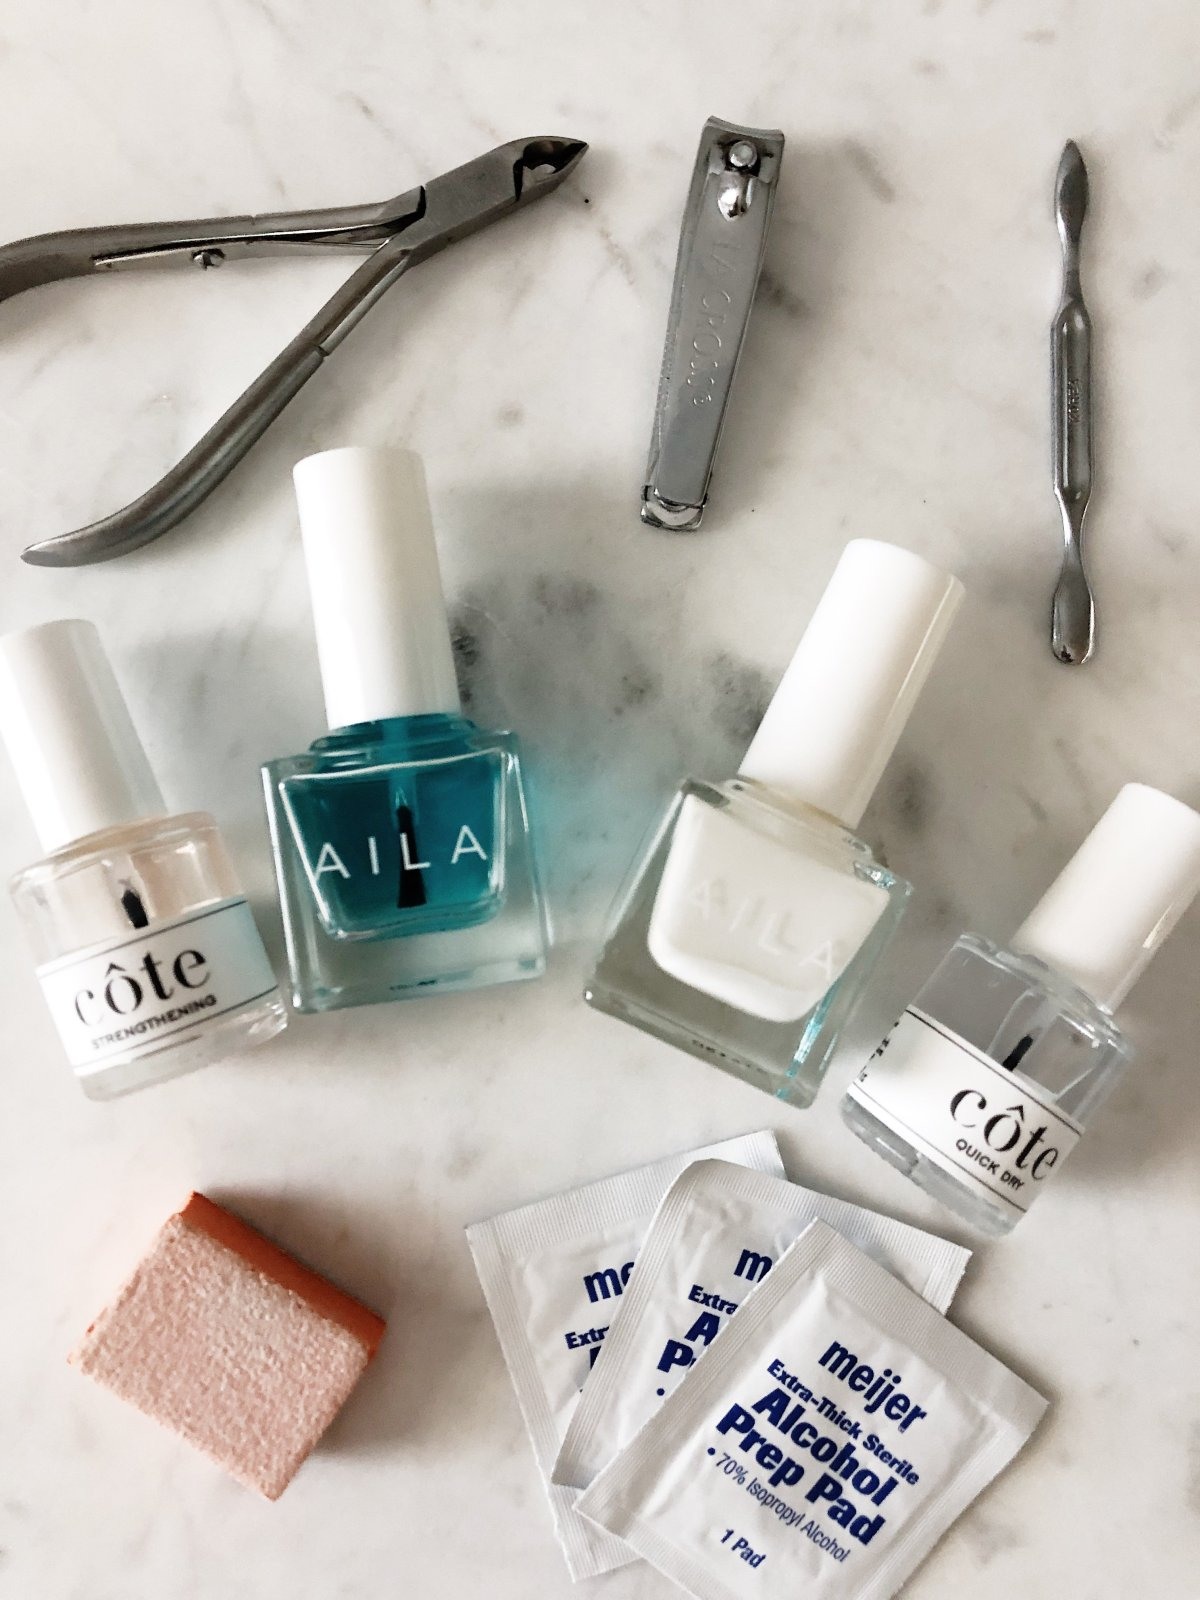 Picture of nail polish and other manicure supplies